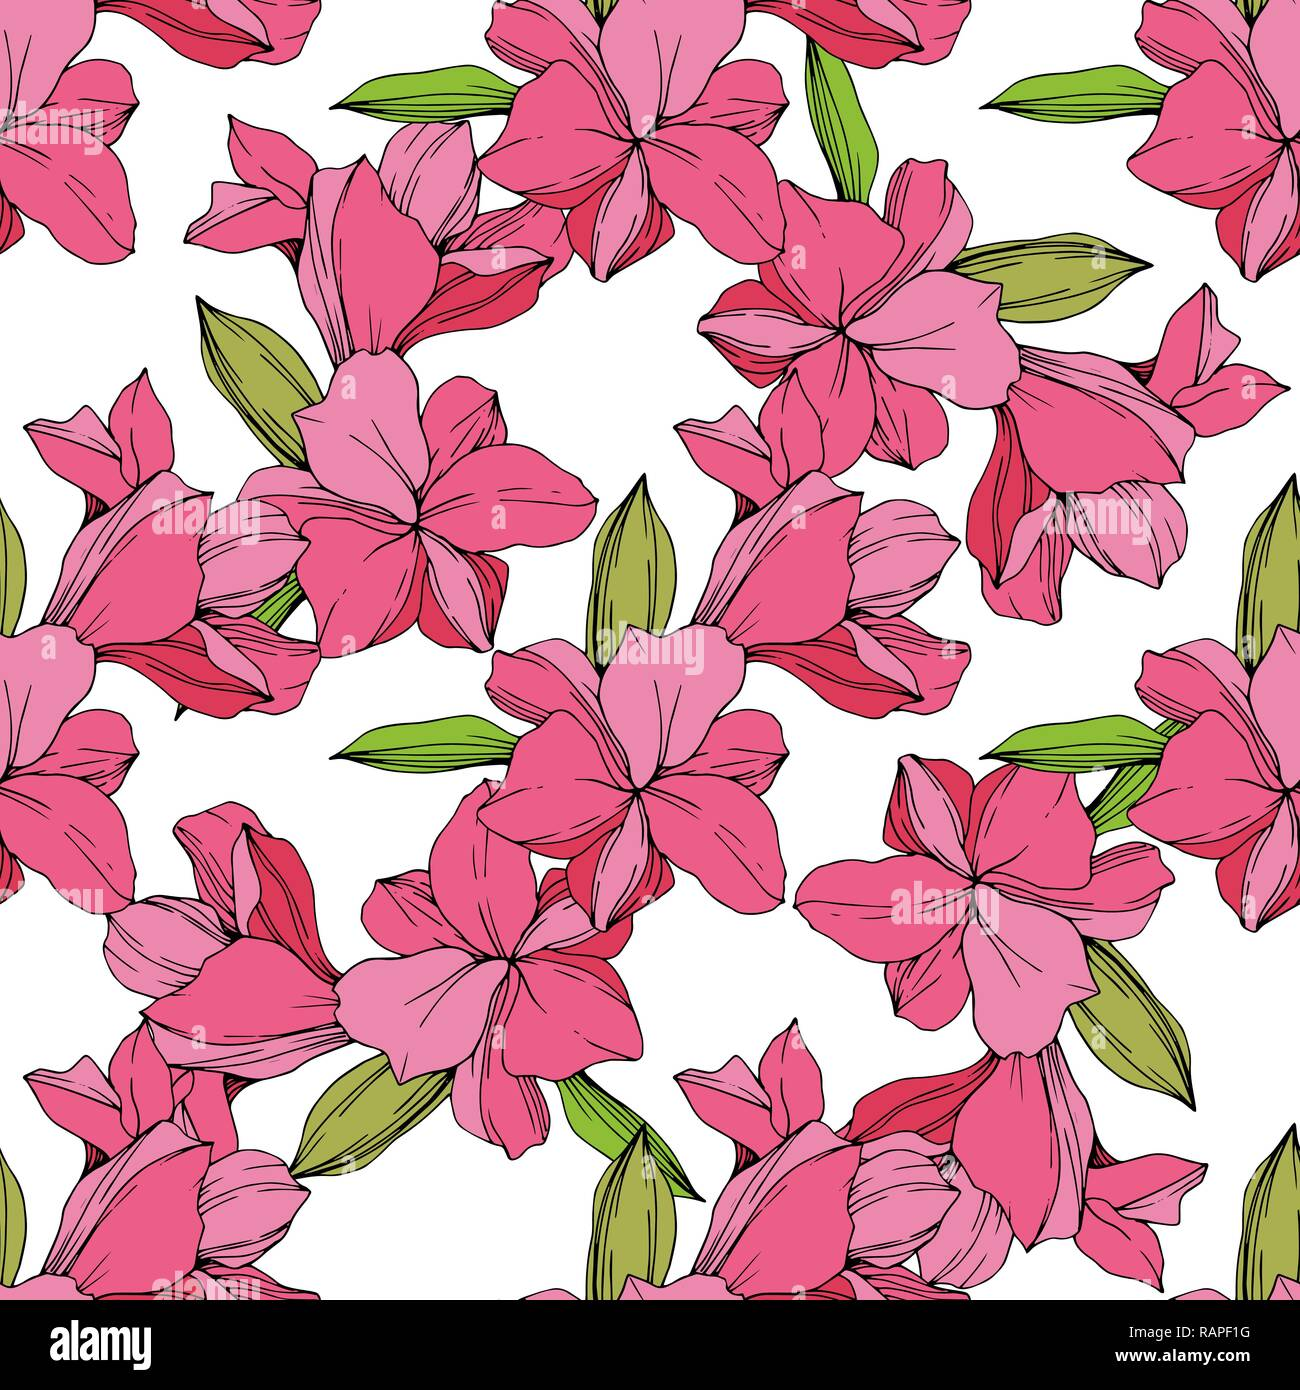 Vector Pink Orchid Floral Botanical Flower Engraved Ink